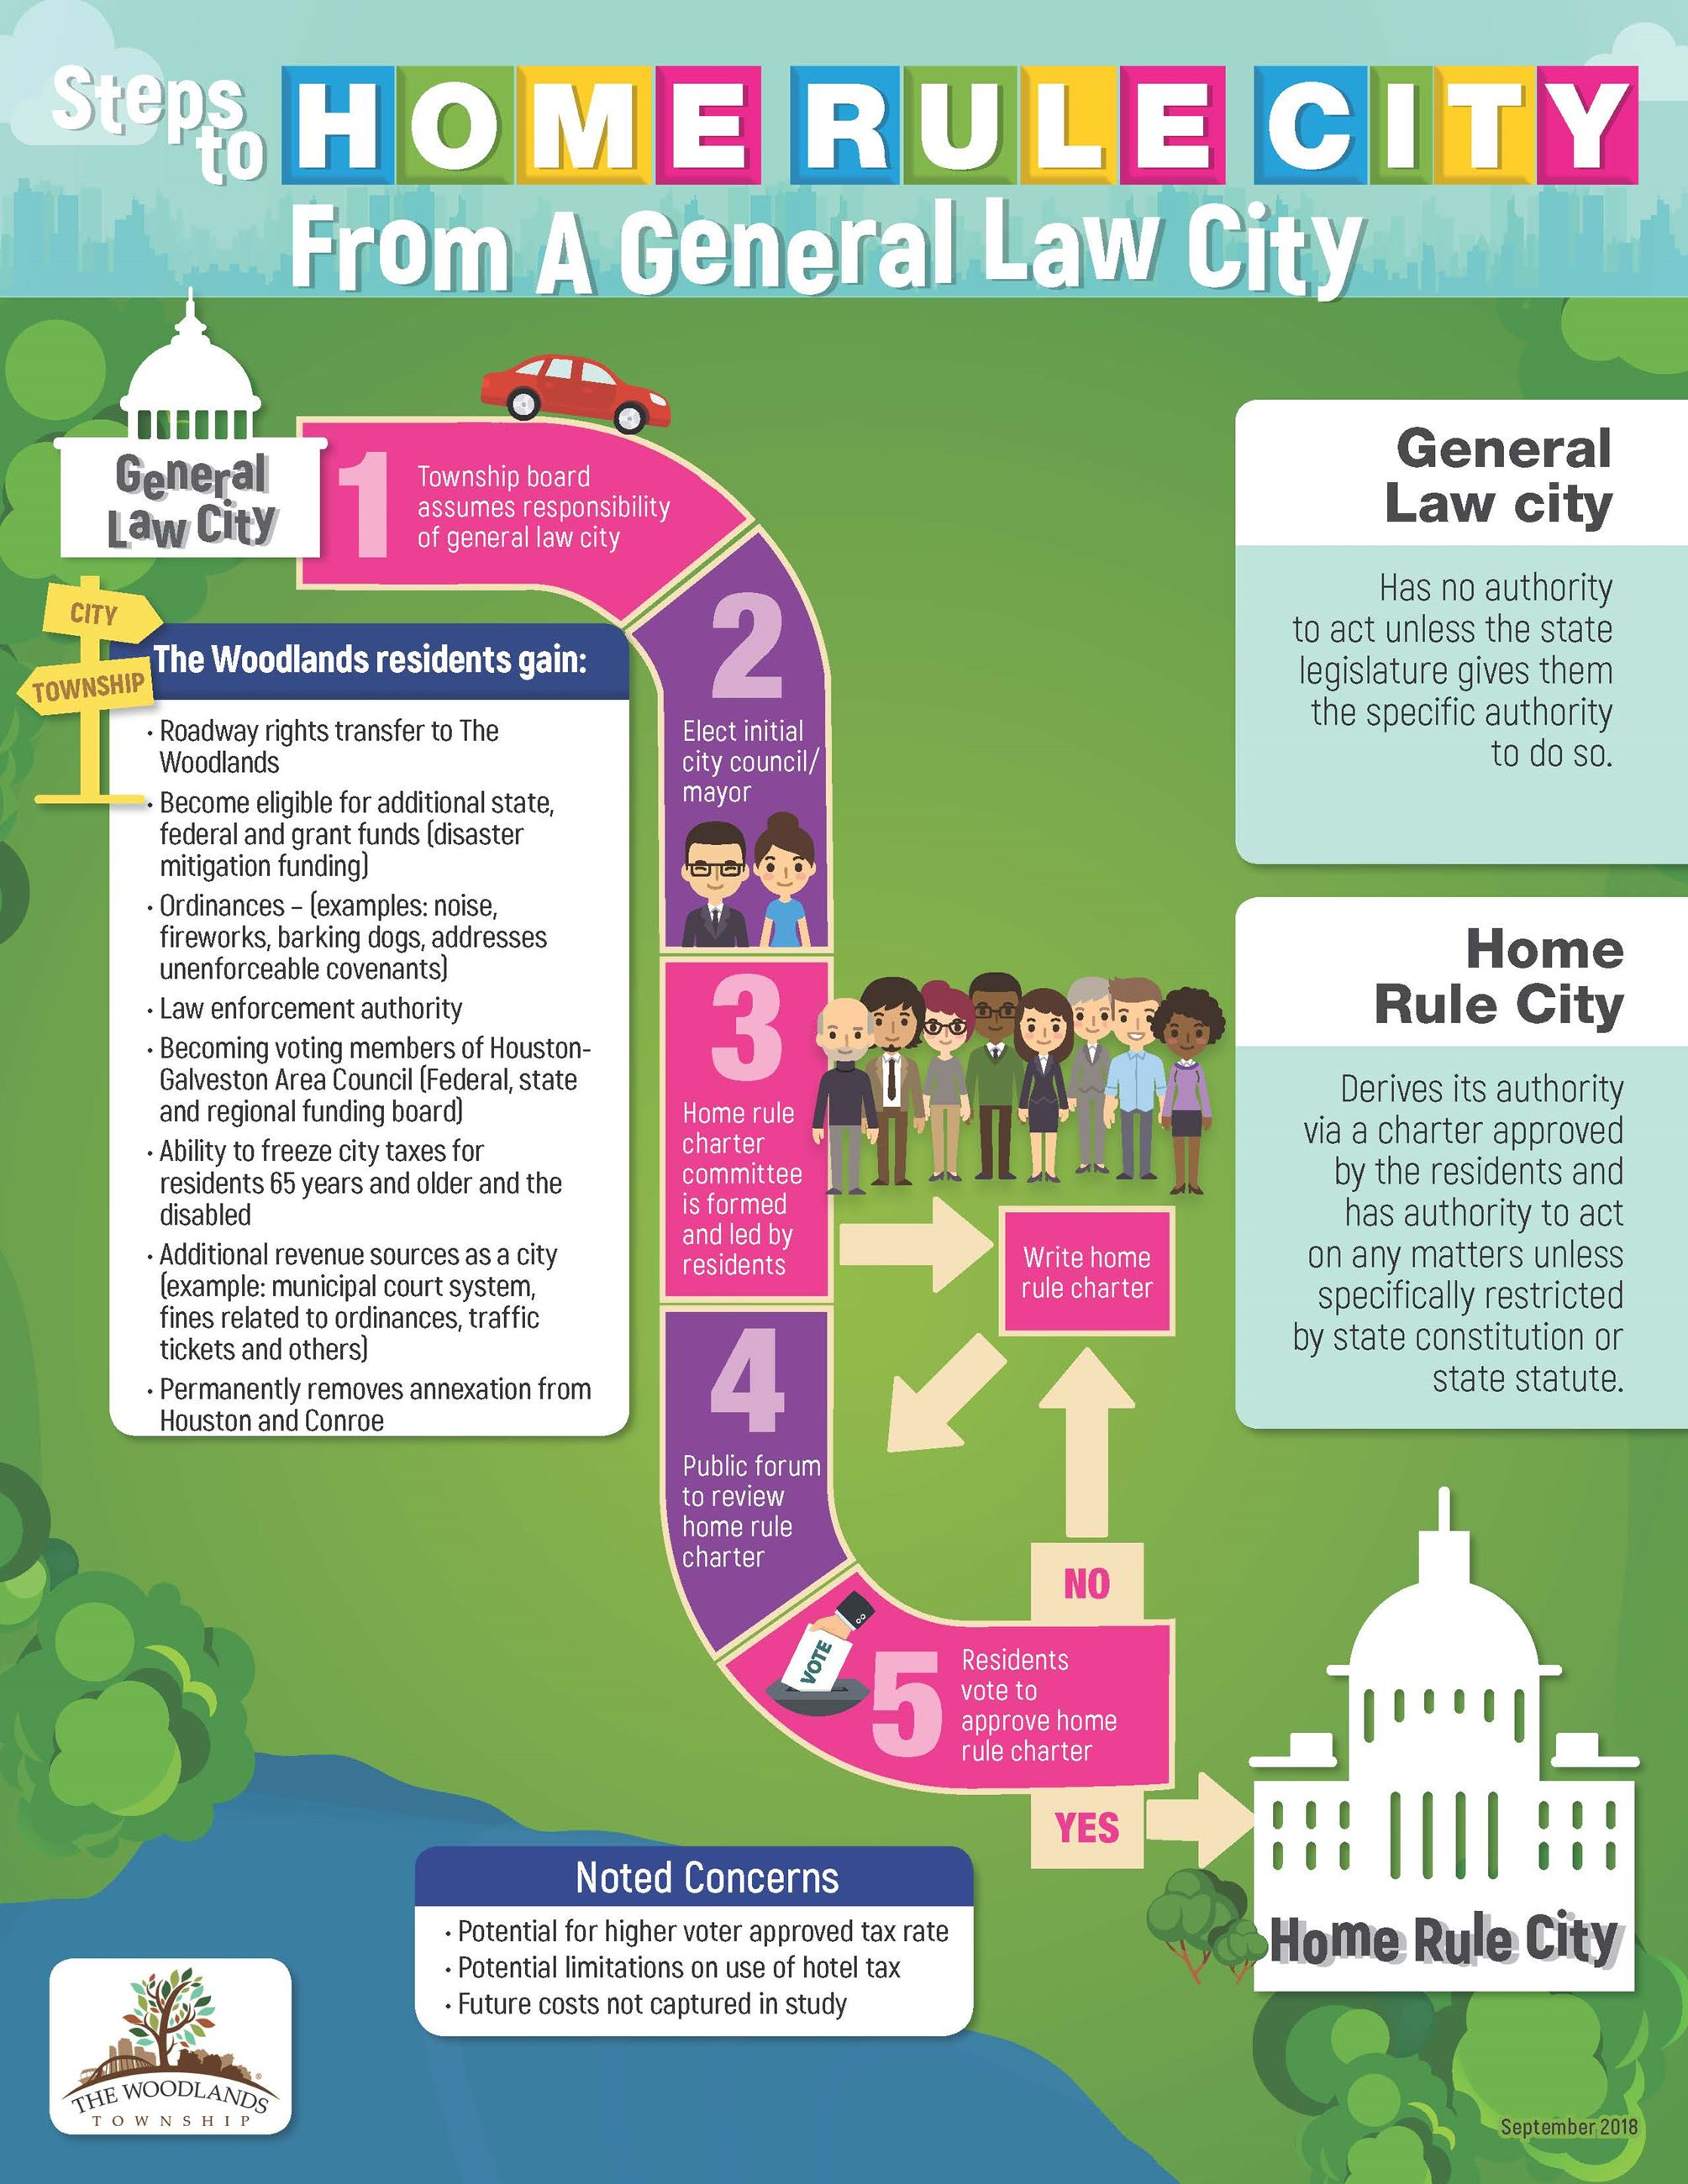 Steps to Home Rule City from a General Law City Infographic